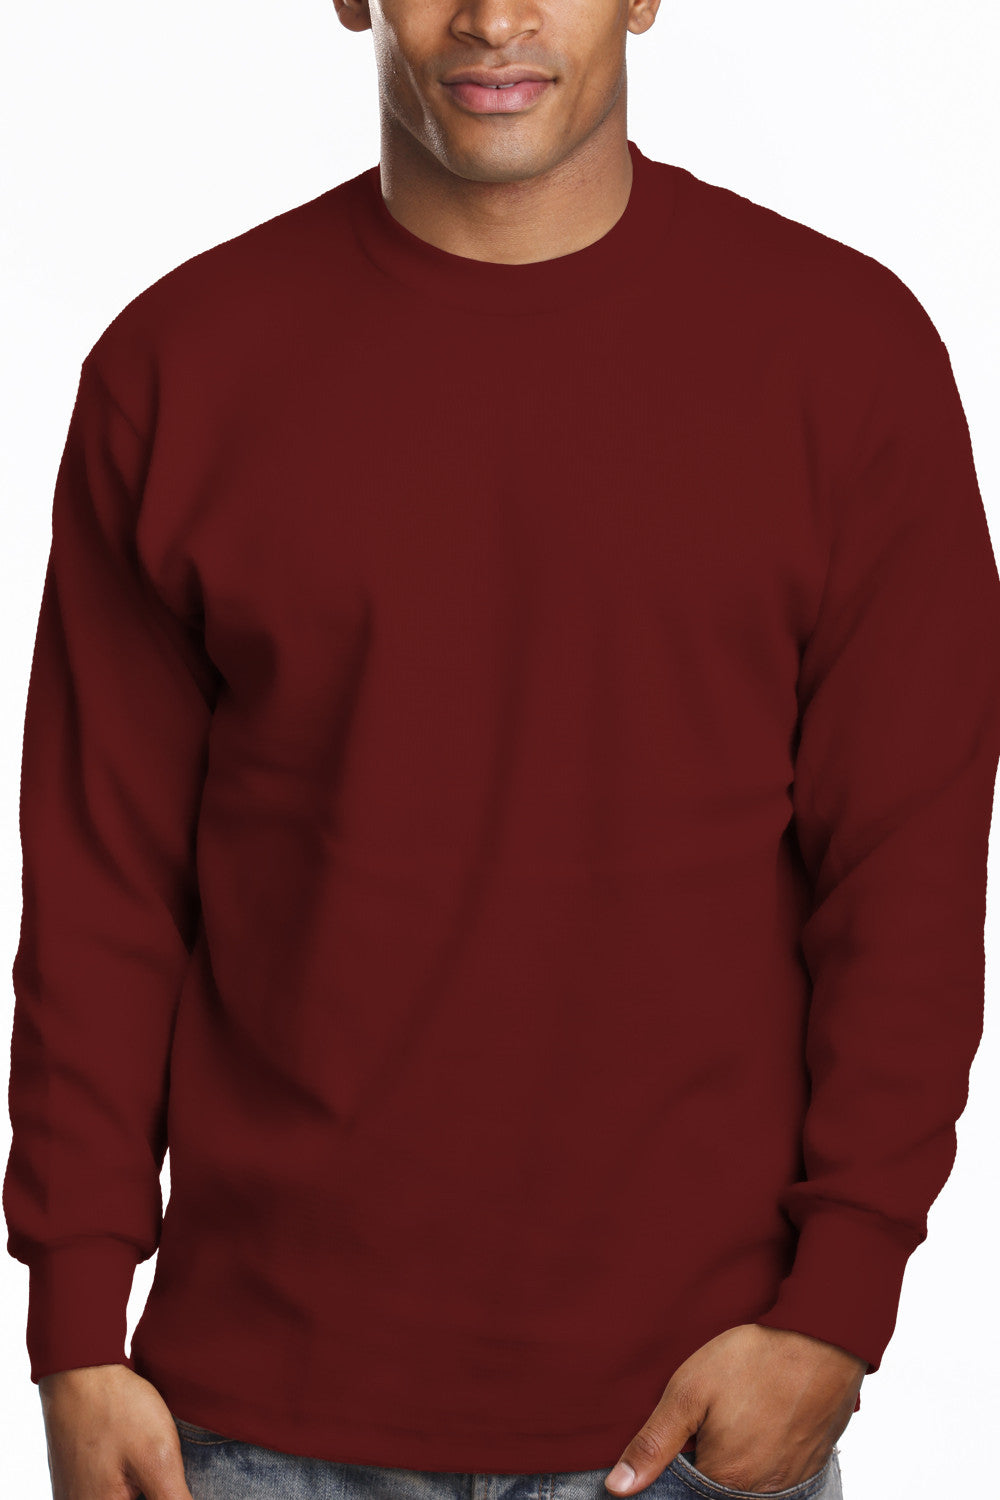 Mens Long Sleeve Super Heavy Shirt Tall Size Burgundy